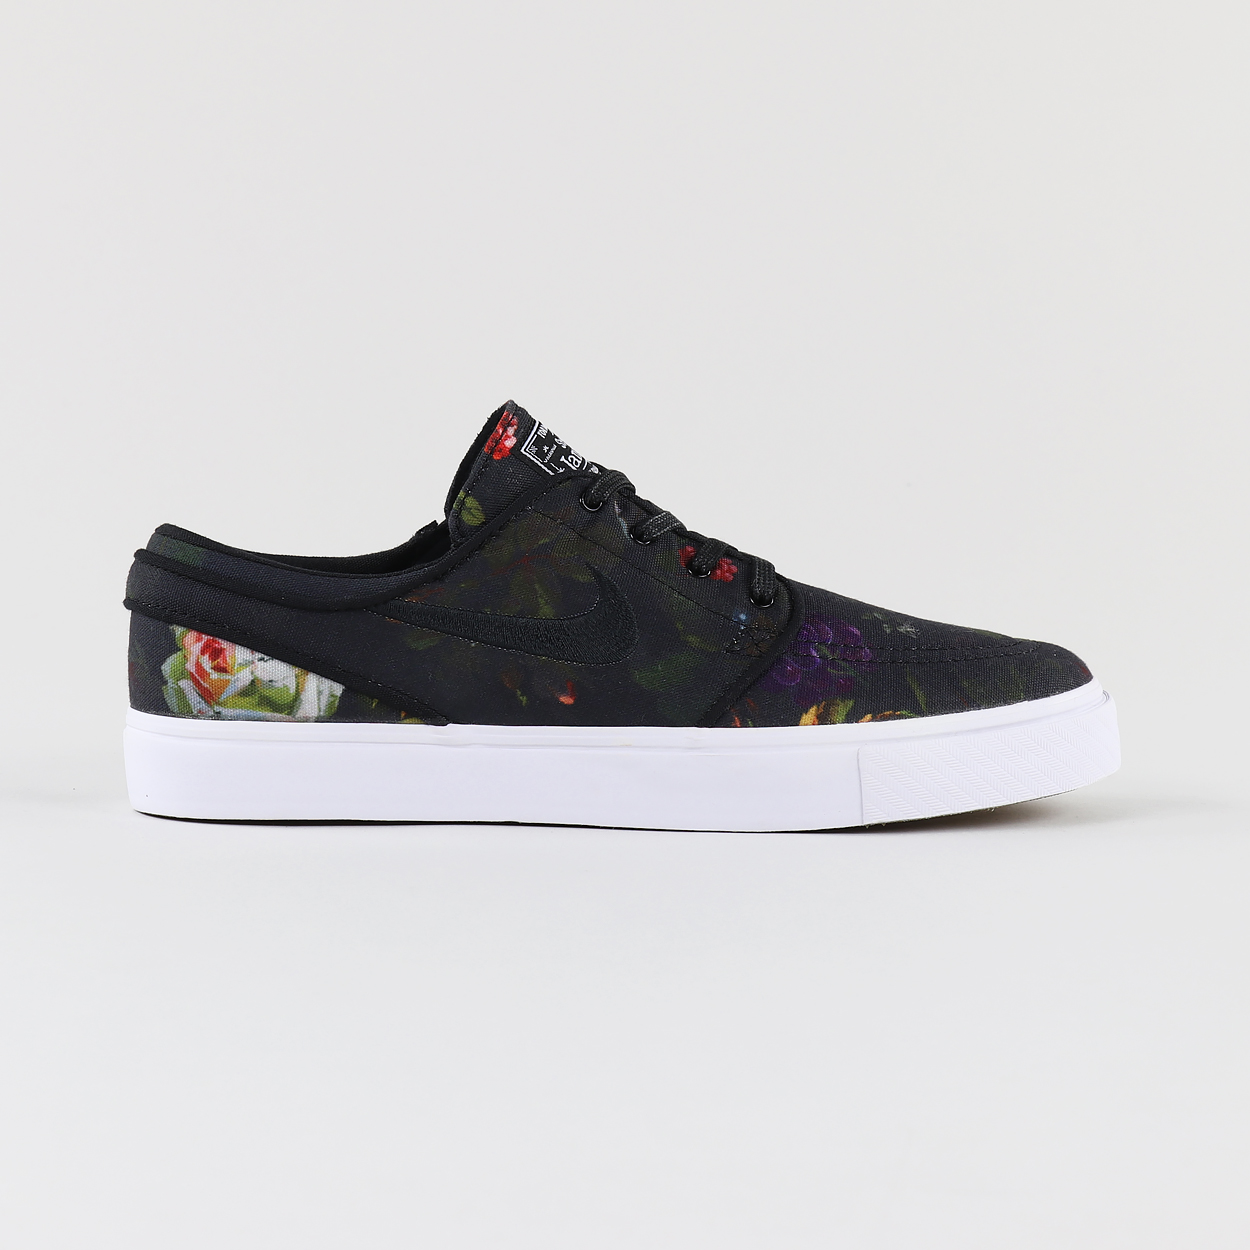 Nike SB Mens Skateboarding Janoski Skate Canvas Floral Shoes £52.50 3d6739b66